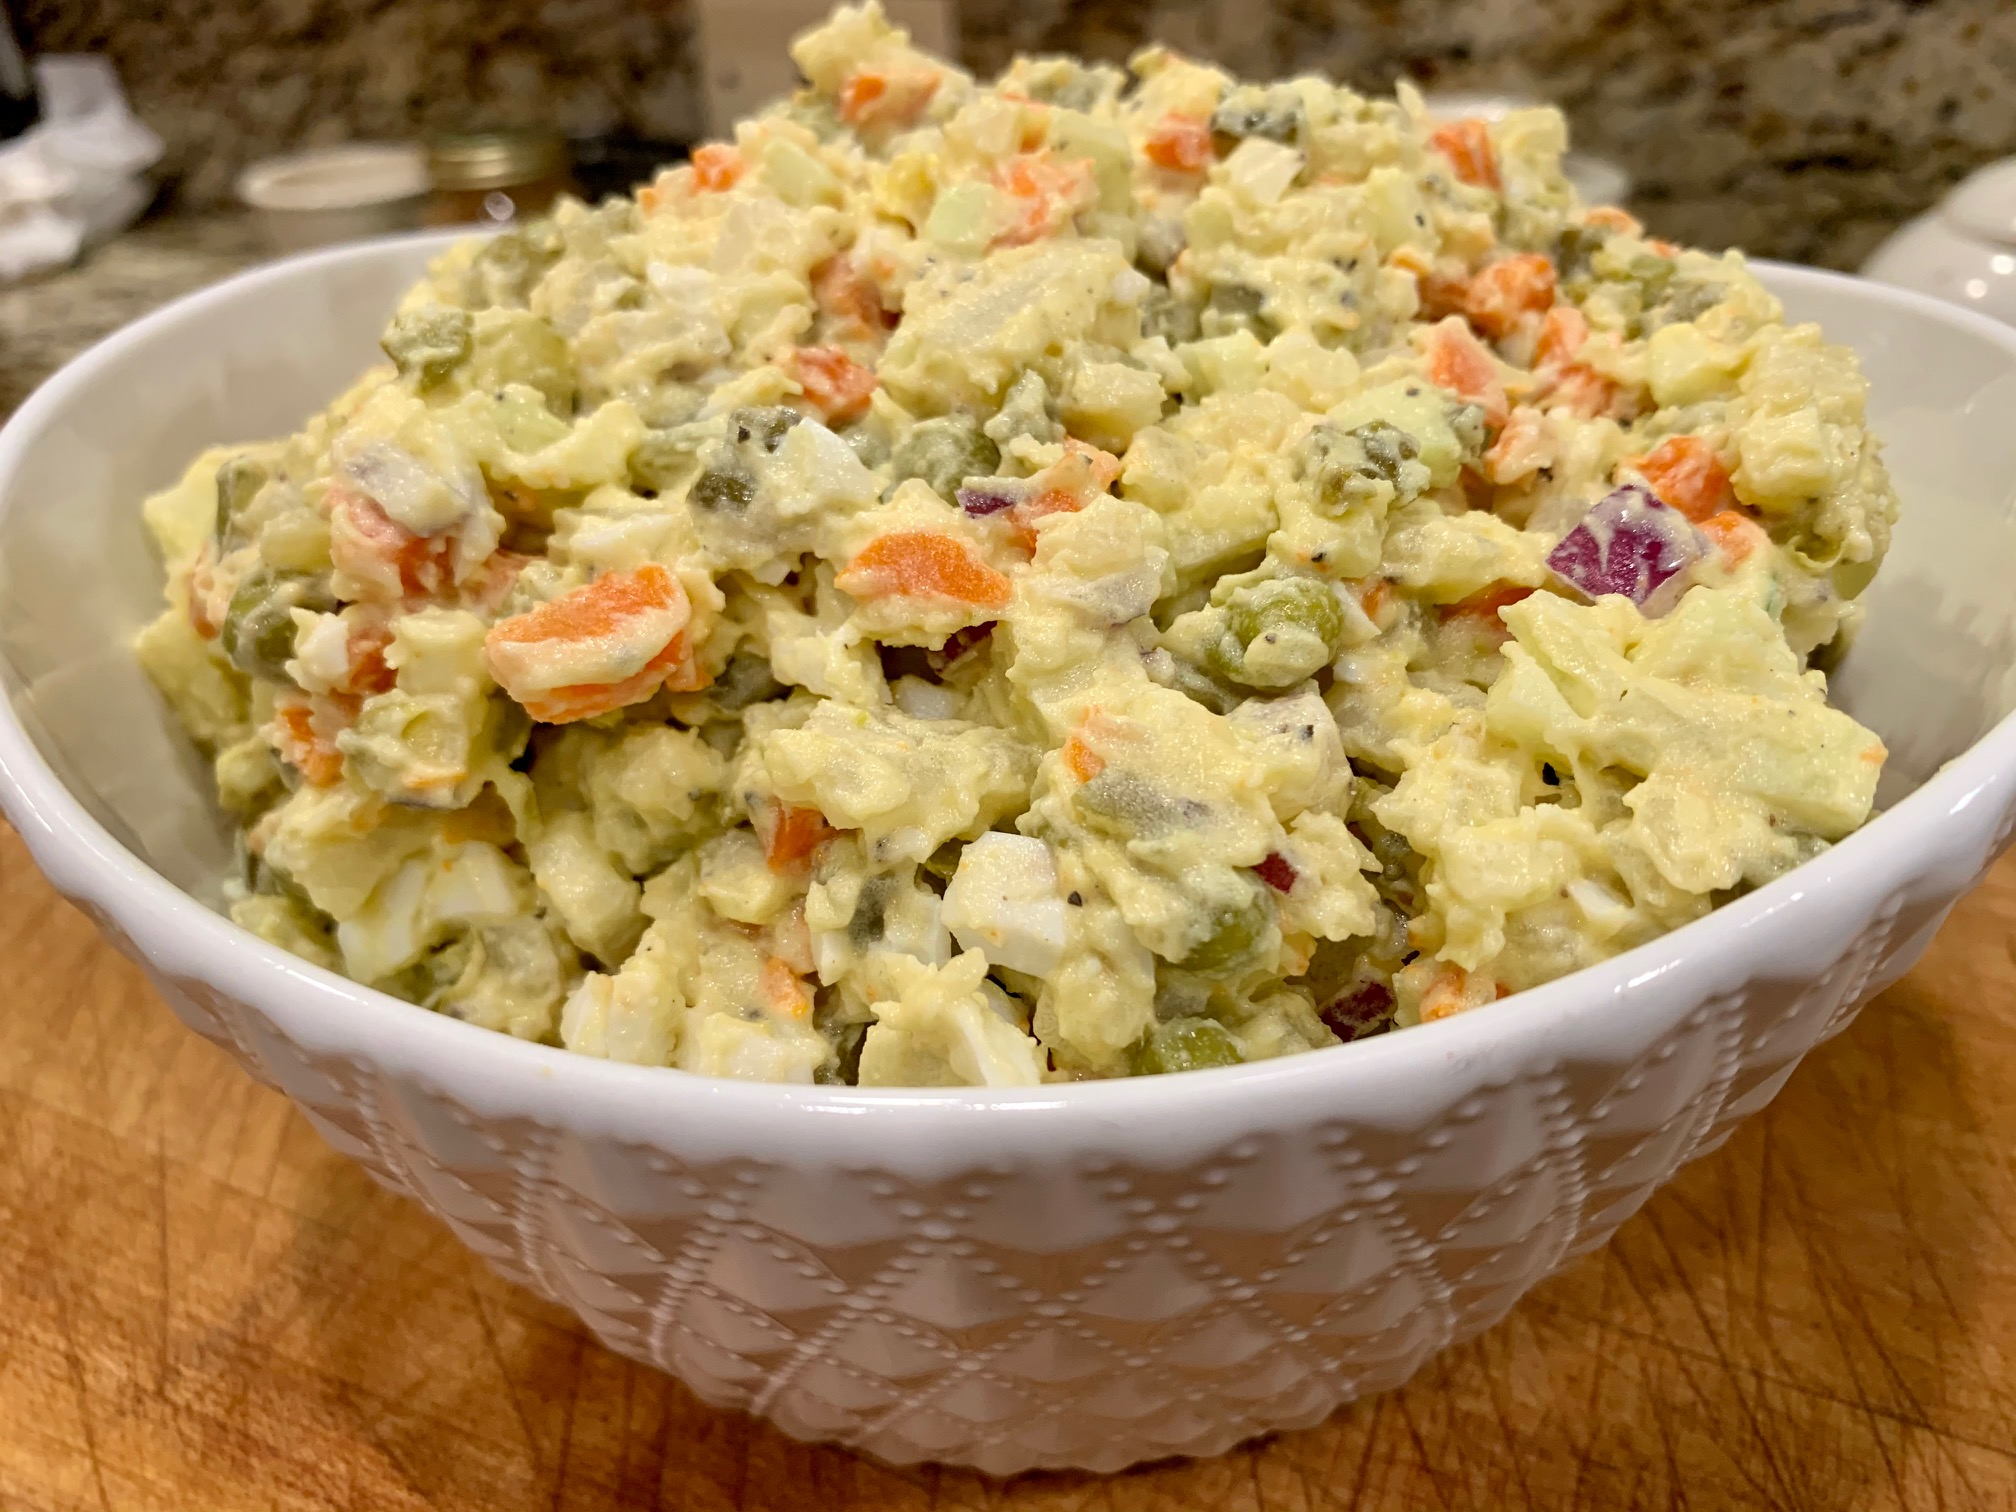 Finished photo of potato salad recipe